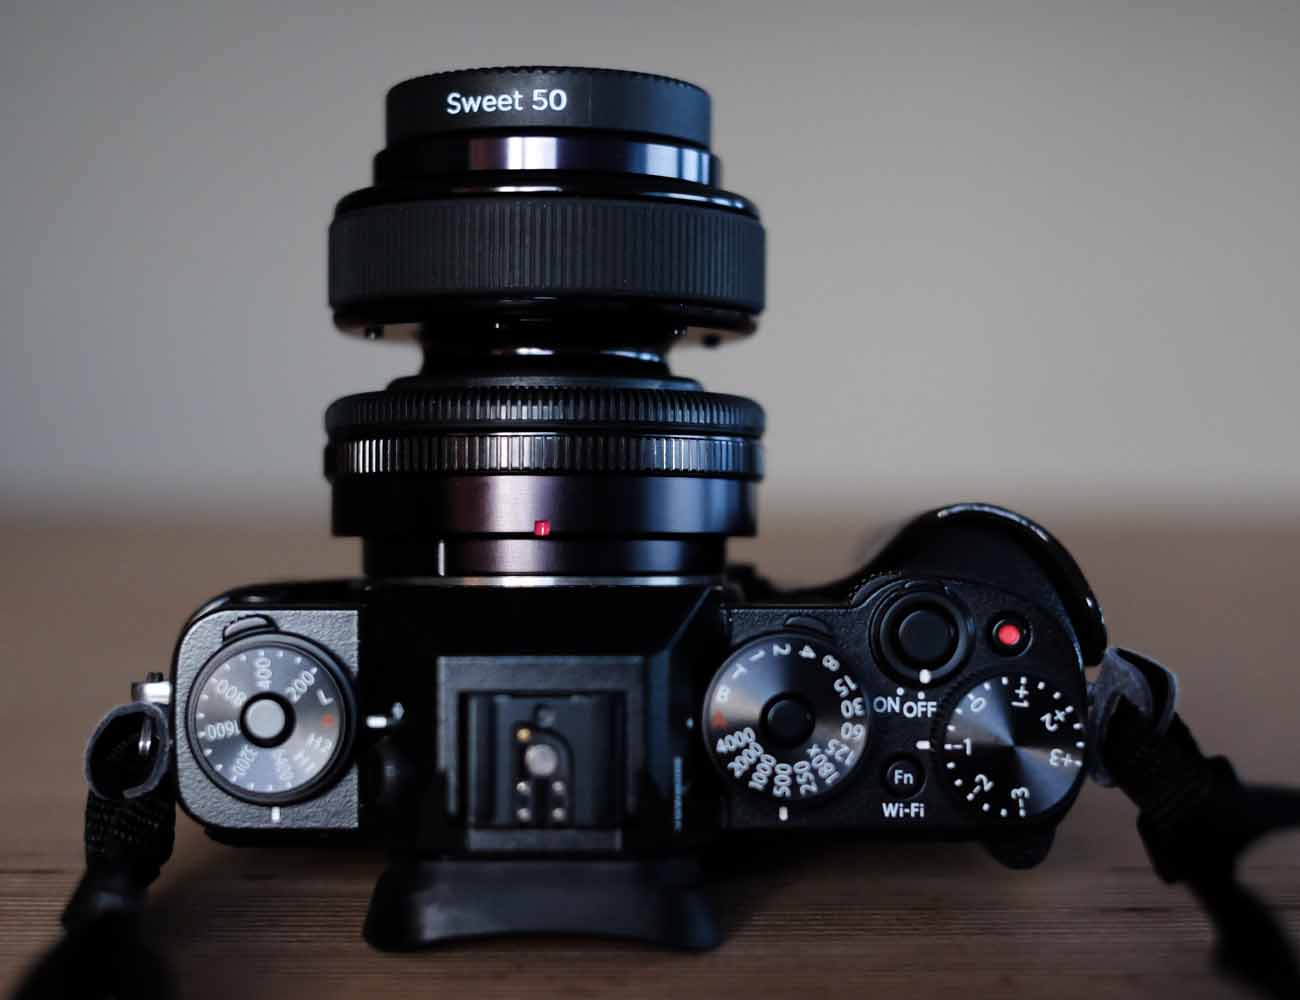 Lensbaby+Composer+Pro+Sweet+50+For+Canon